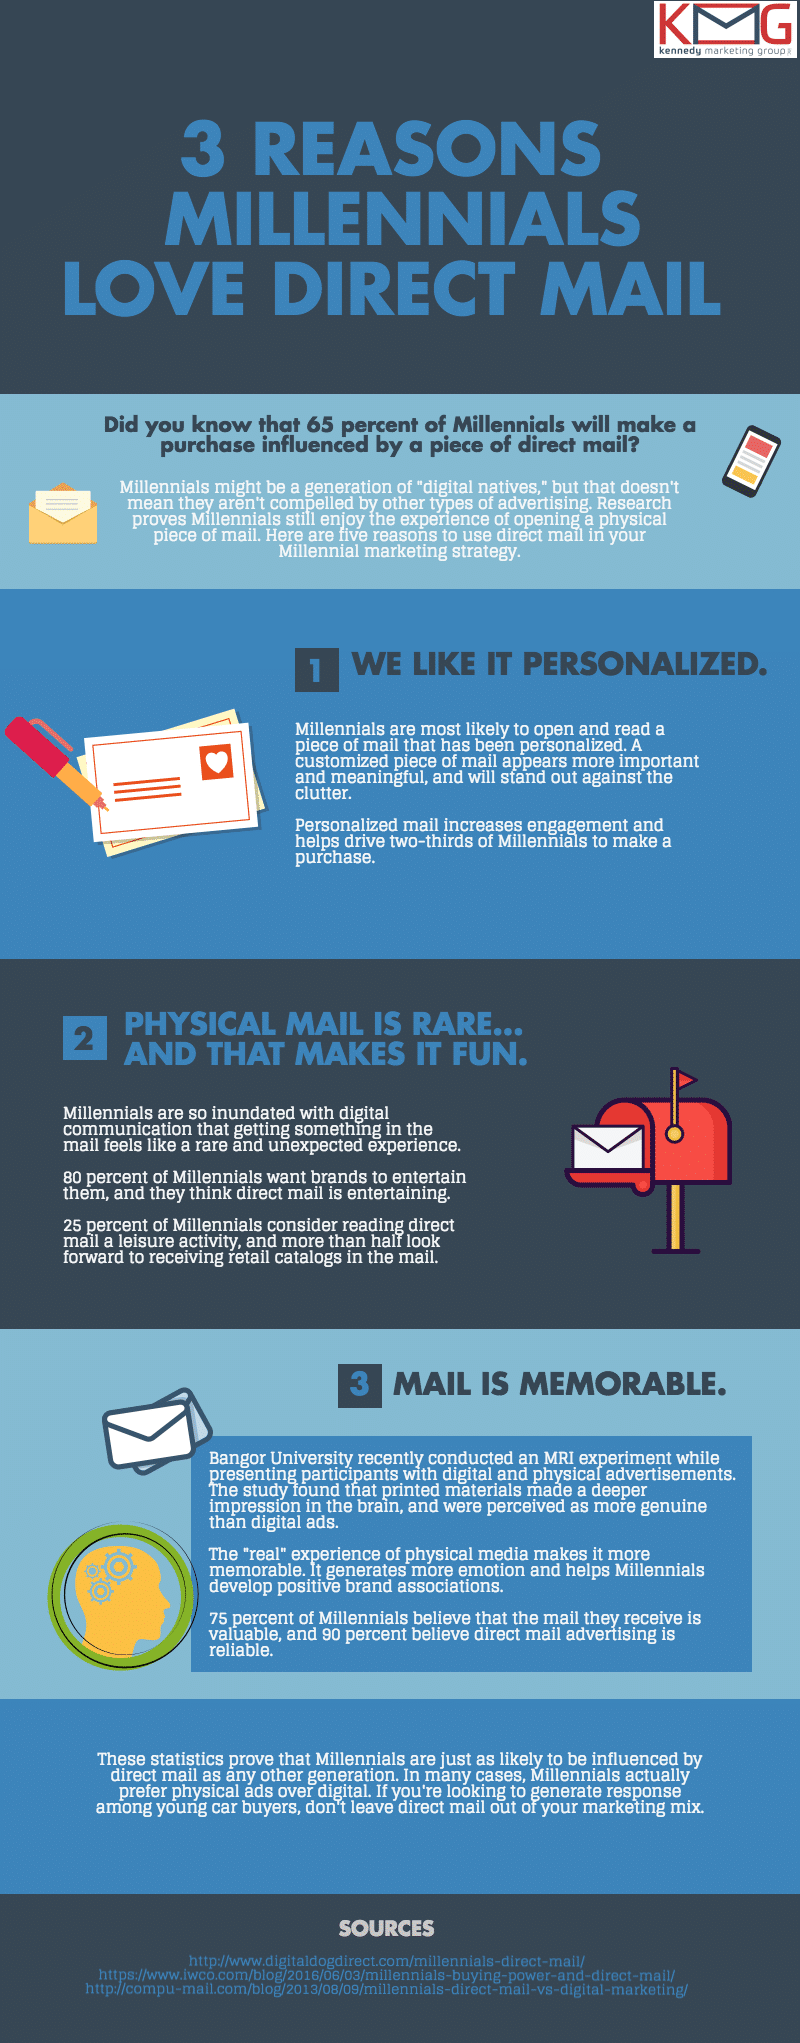 Three reasons millennials love direct mail infographic